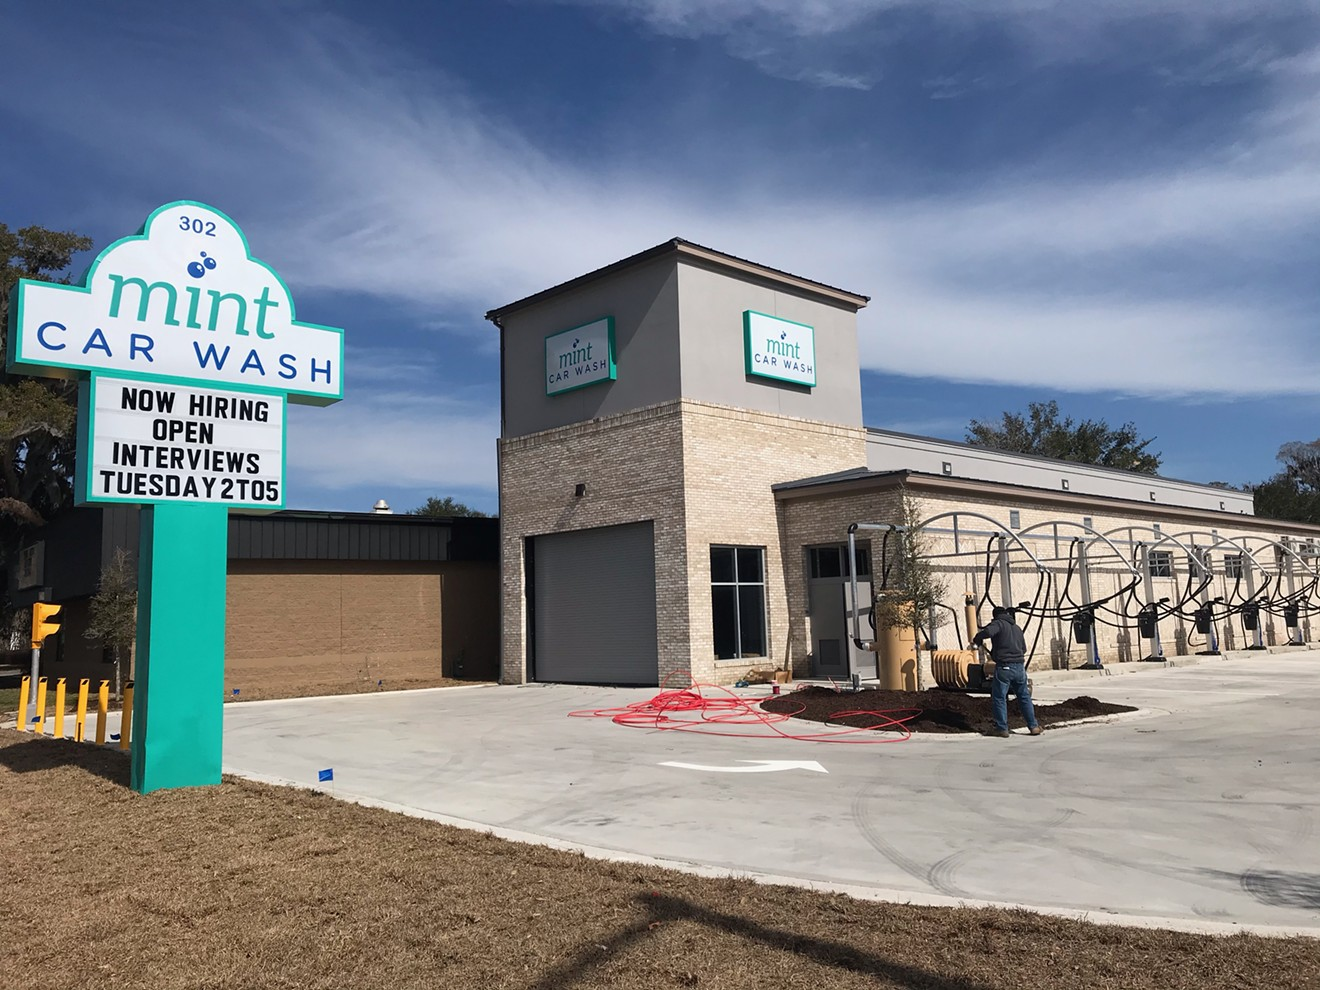 The third Mint Car Wash location opens earlier this year at 302 Commercial Dr. in Savannah.